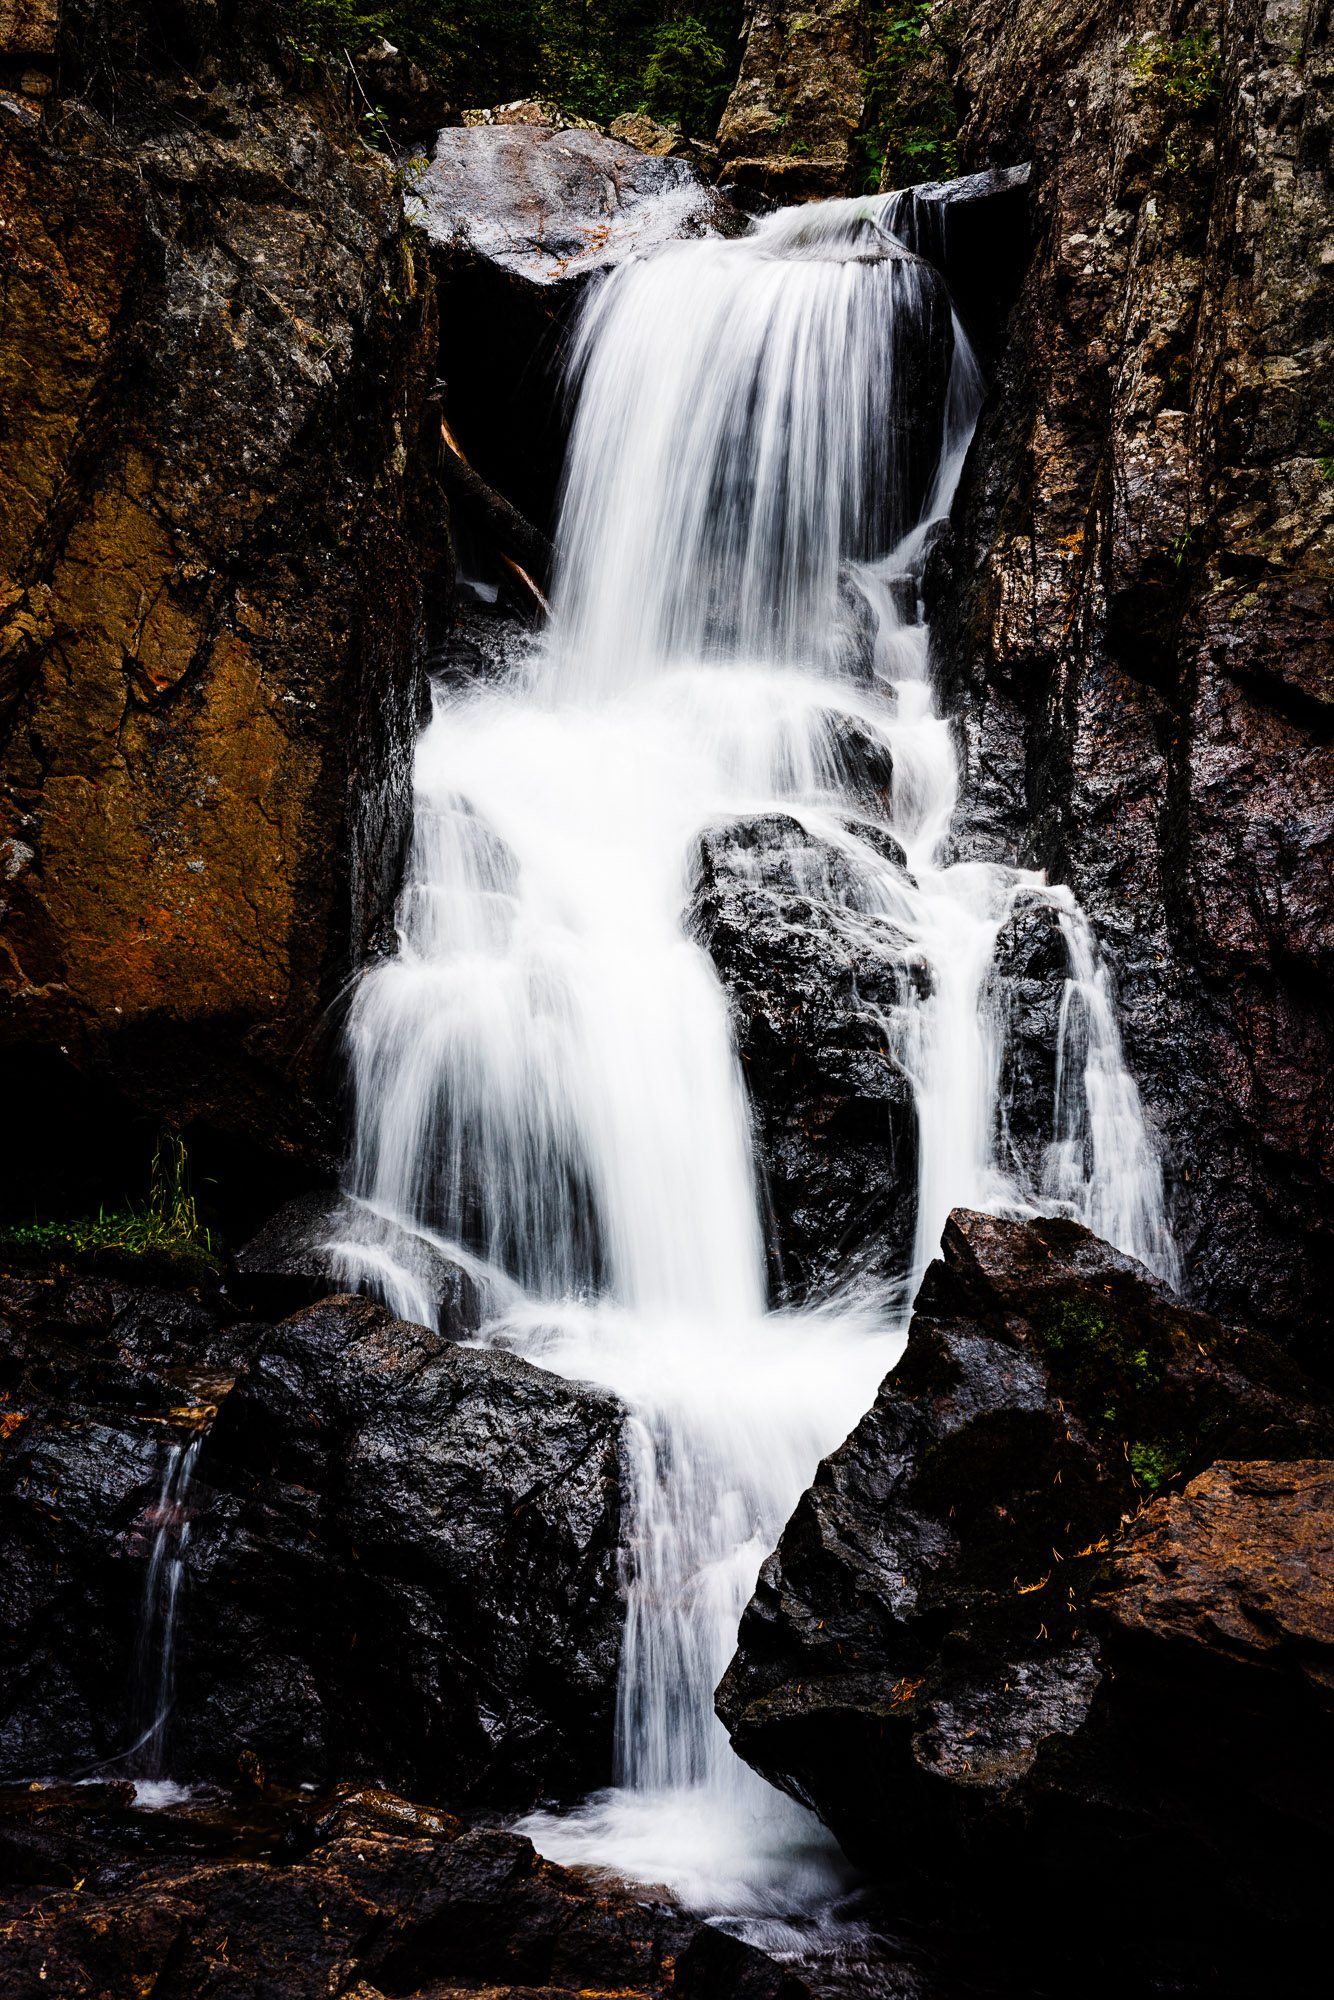 indian_peaks_wilderness_waterfall - color - too high contrast.jpg